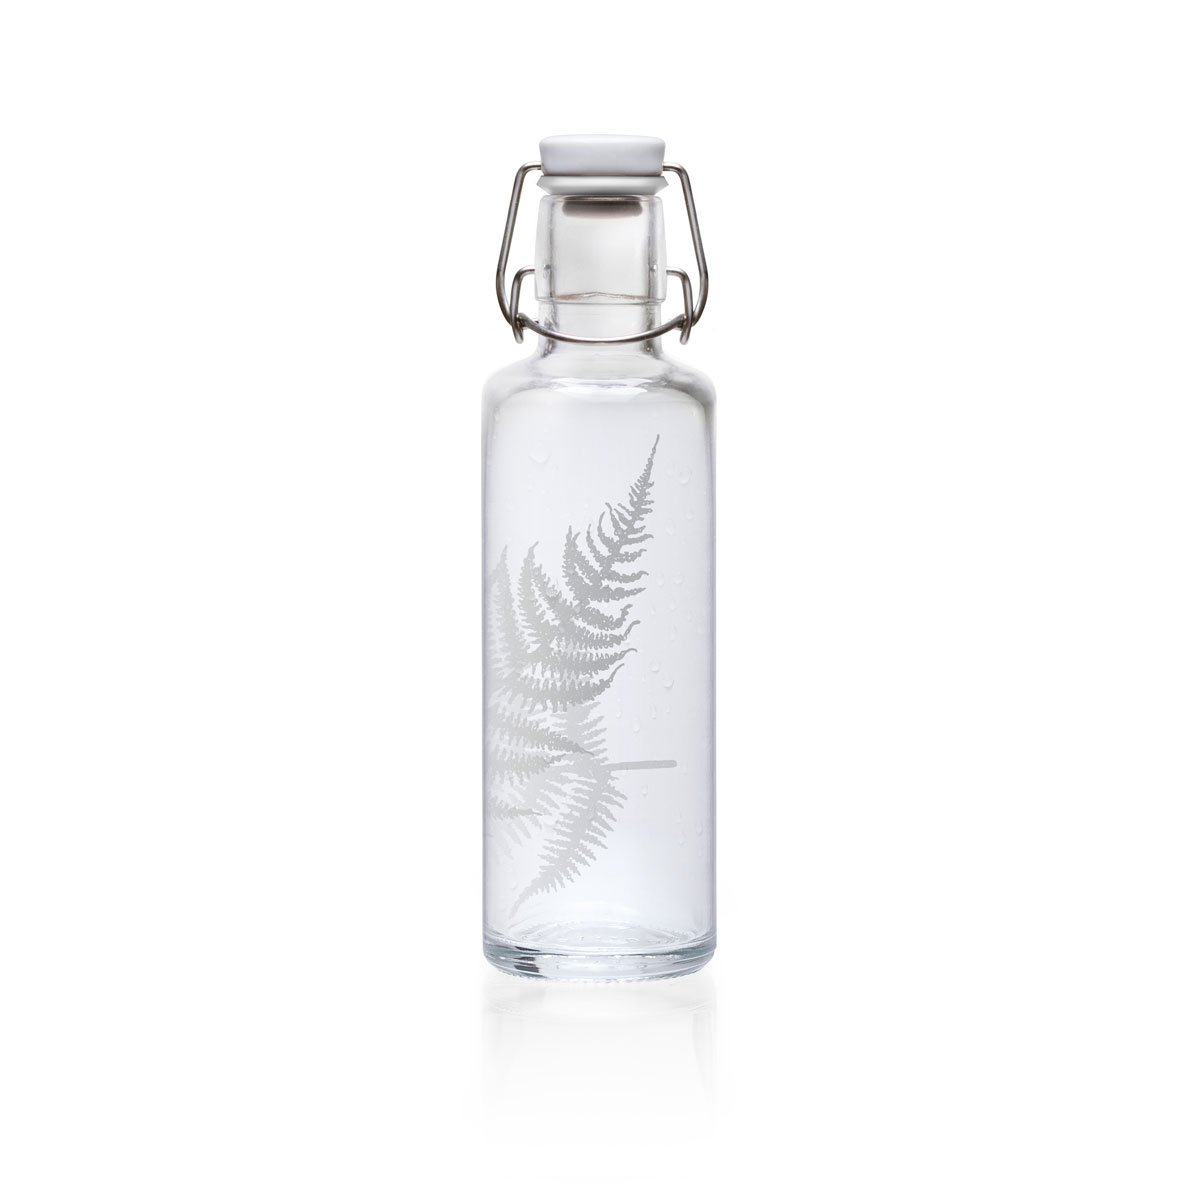 (1 Schluck Sommer) - Soulbottle 0.6 L Drinking Glass Bottle; Assorted Designs, Made in Germany, Vegan, Plastic Free Glass Water Bottle, Glass Bottle, 1 Schluck Sommer soulproducts GmbH